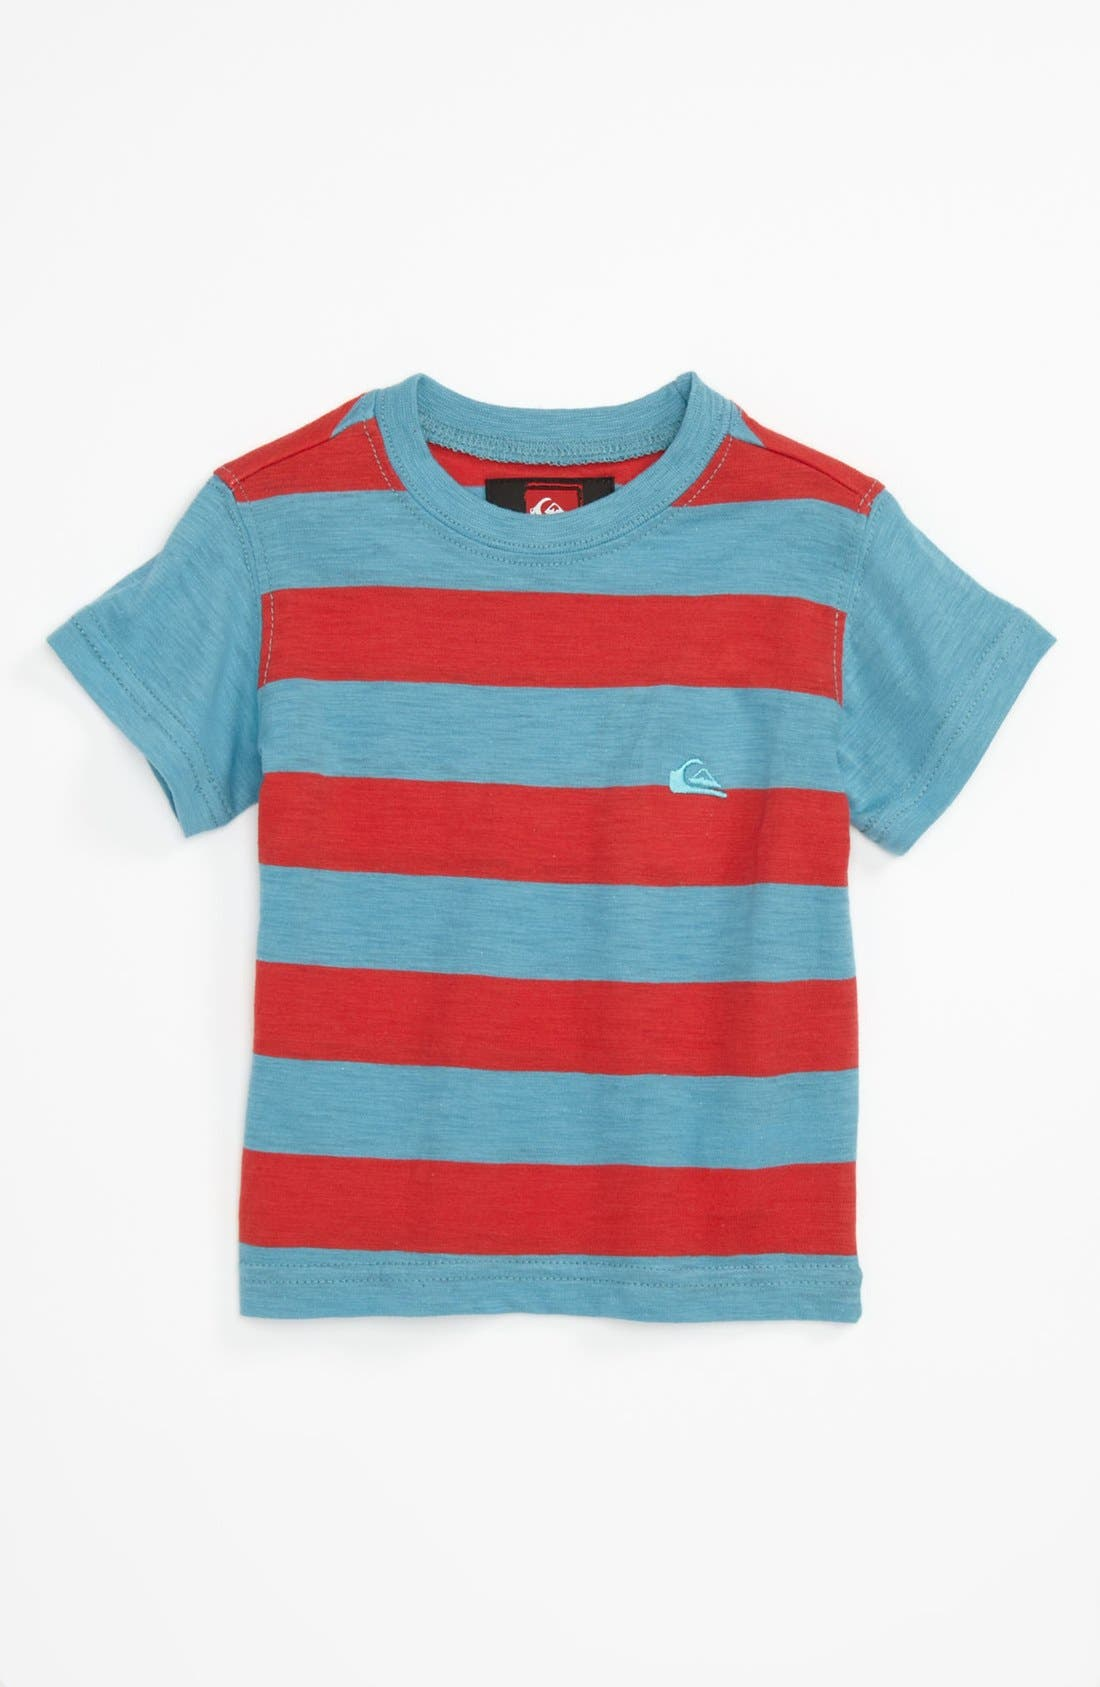 Alternate Image 1 Selected - Quiksilver 'Zebra Juice' T-Shirt (Toddler)